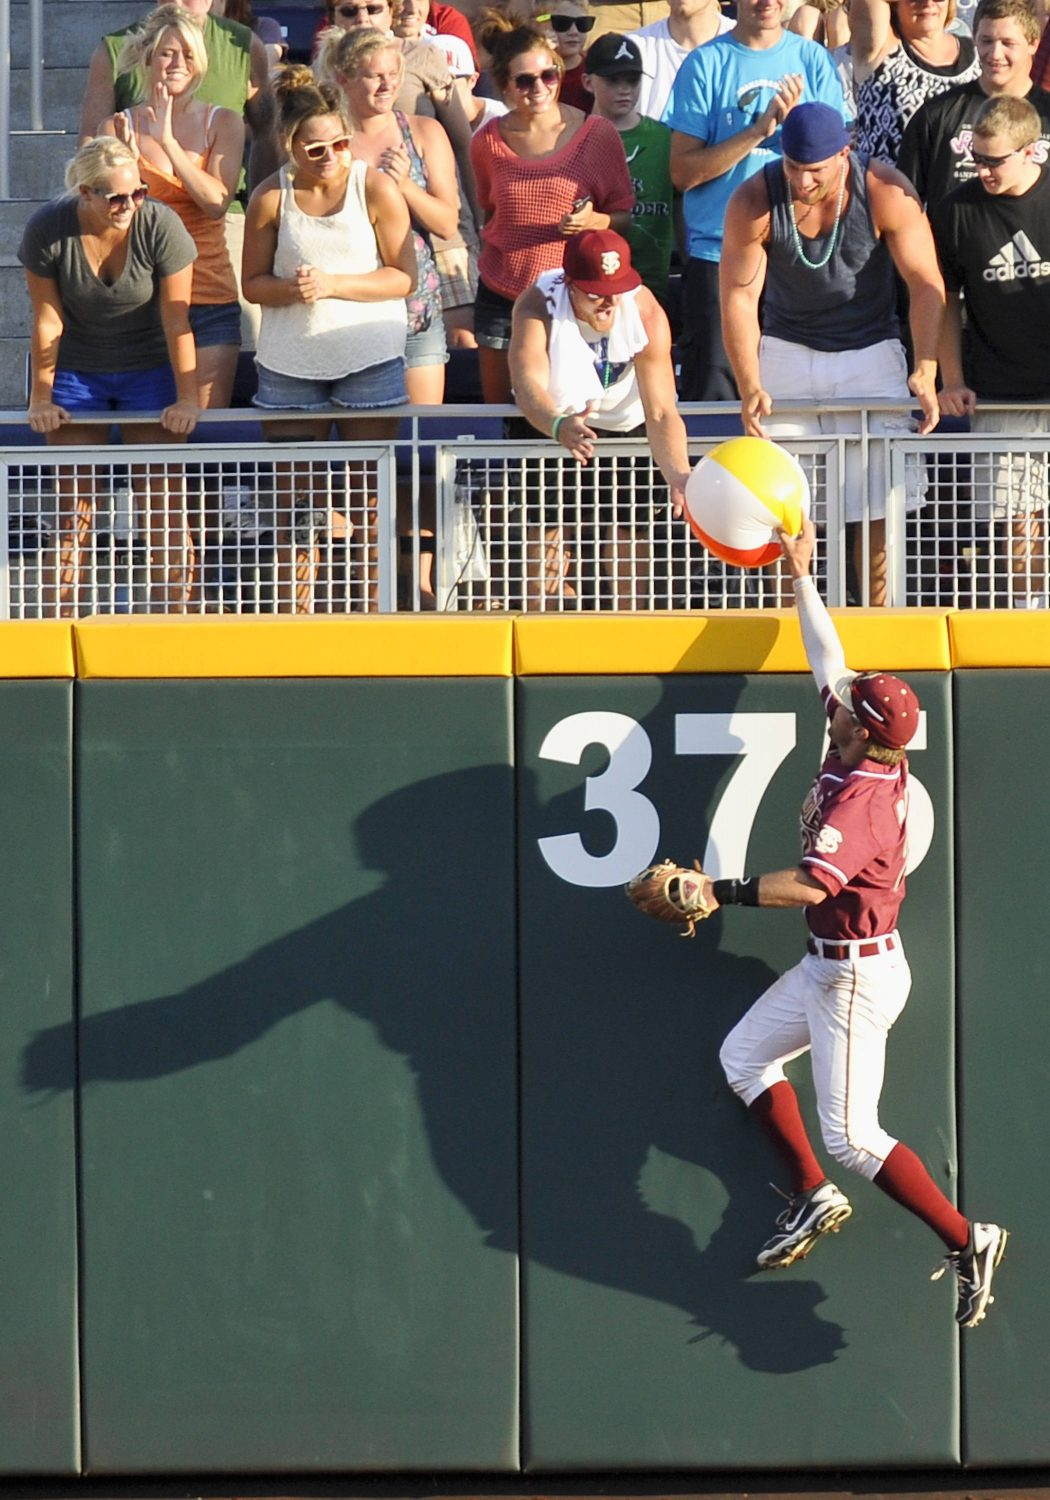 Florida State center fielder James Ramsey finds time to return a beach ball to the stands in the second inning. (AP Photo/Eric Francis)